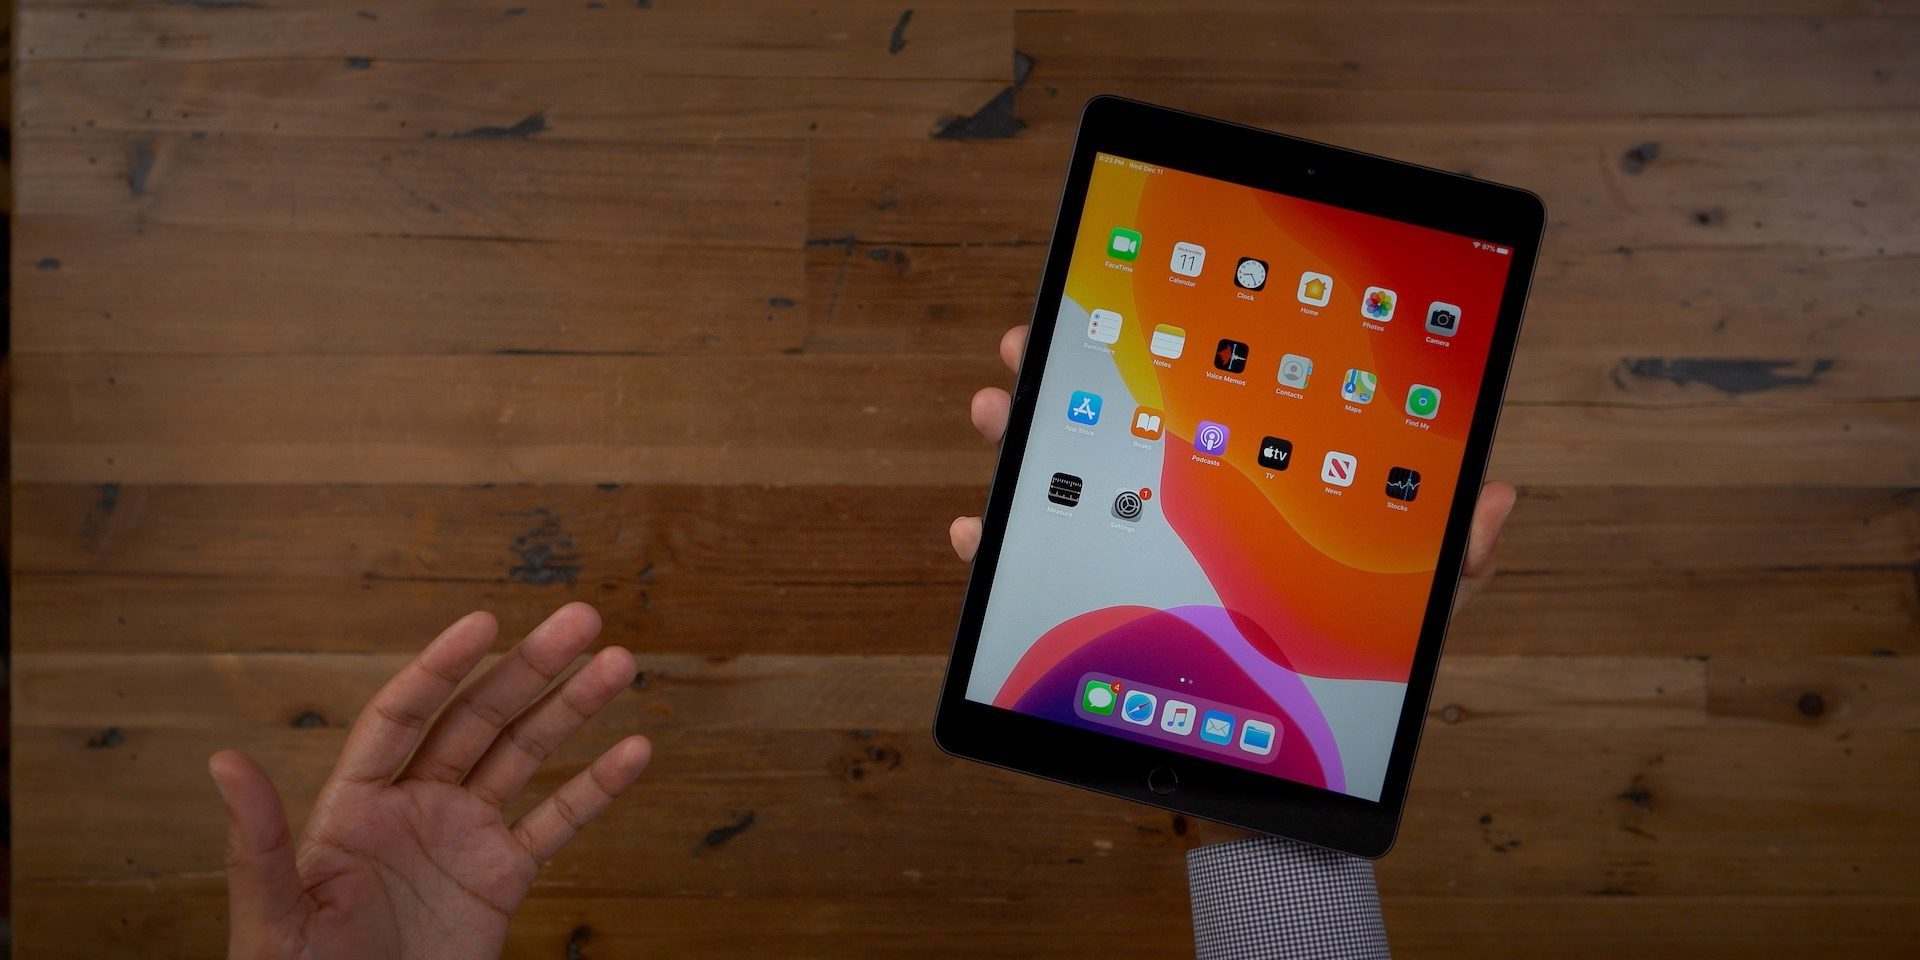 "<span href=""https://9to5mac.com/2019/12/16/ipad-7-top-features-video/"">iPad 7 características principales: Apple más barato tablet crece [Video]</a>"